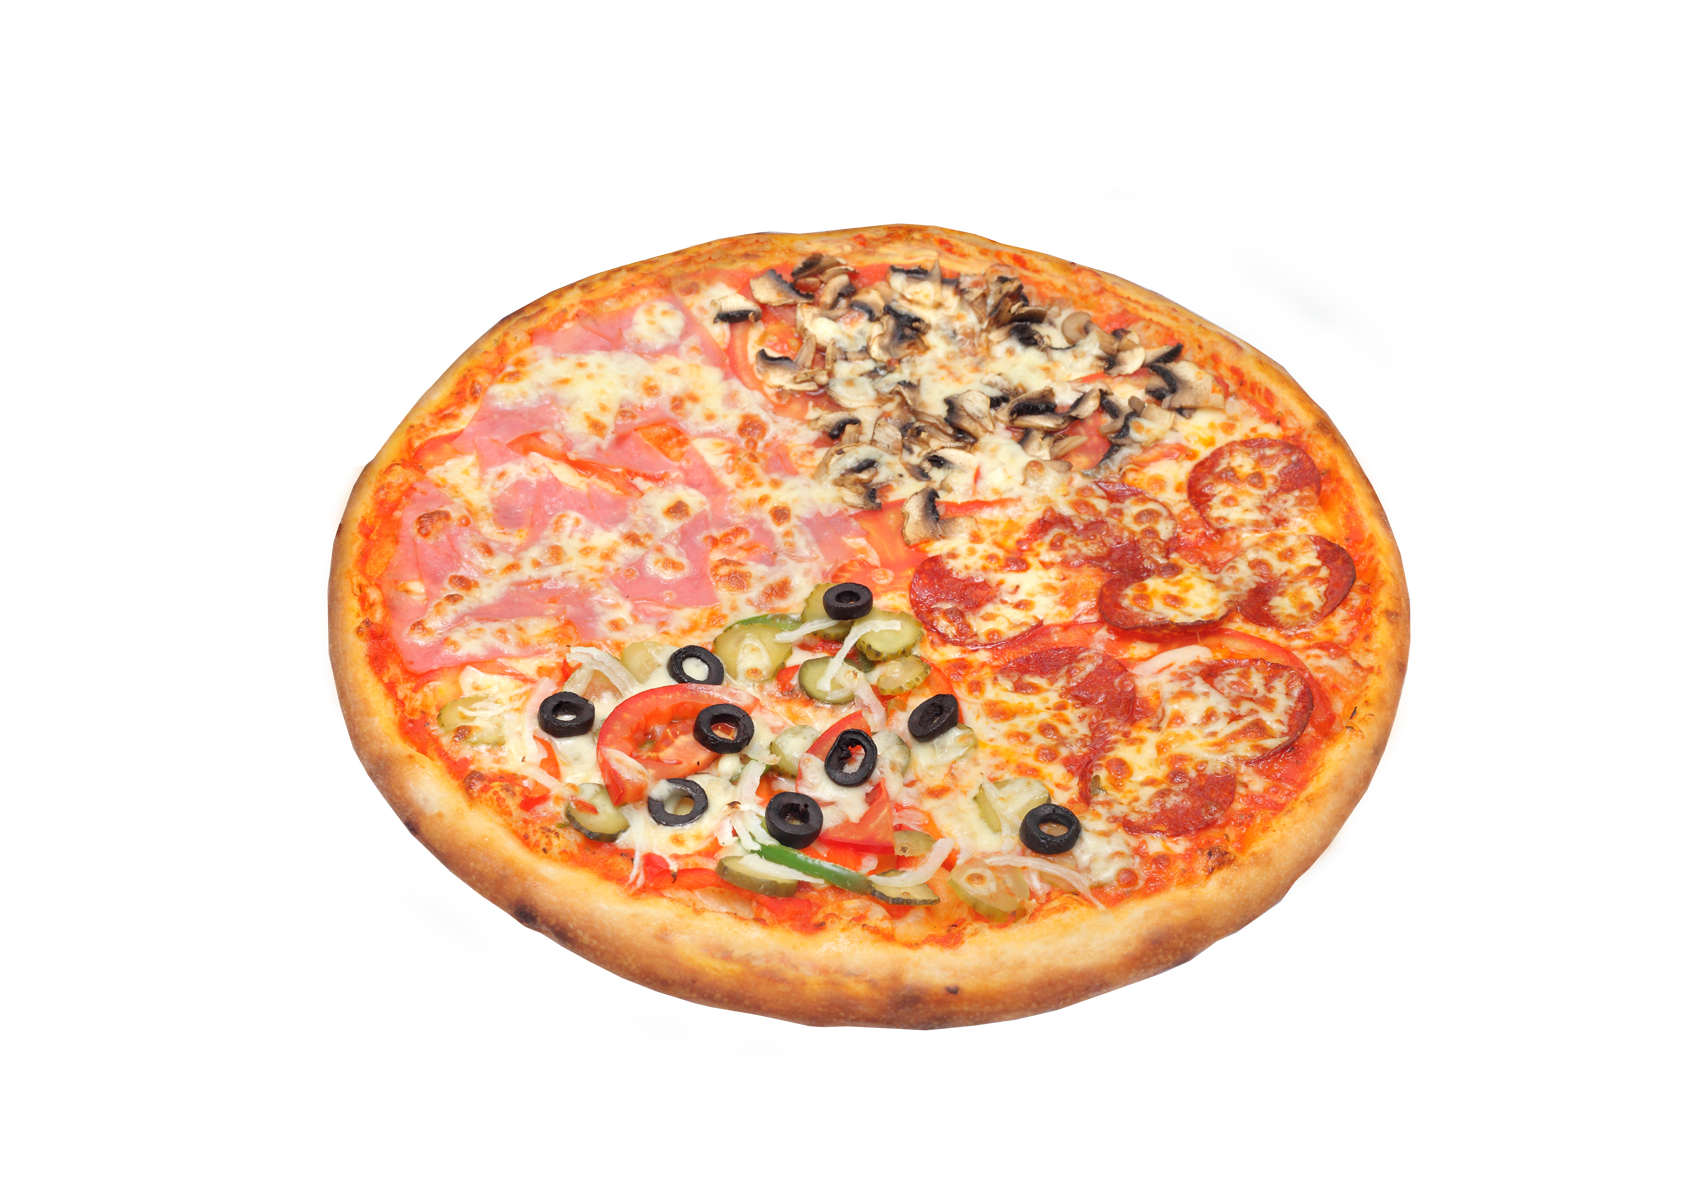 pizza png images  download, pizza png #7968